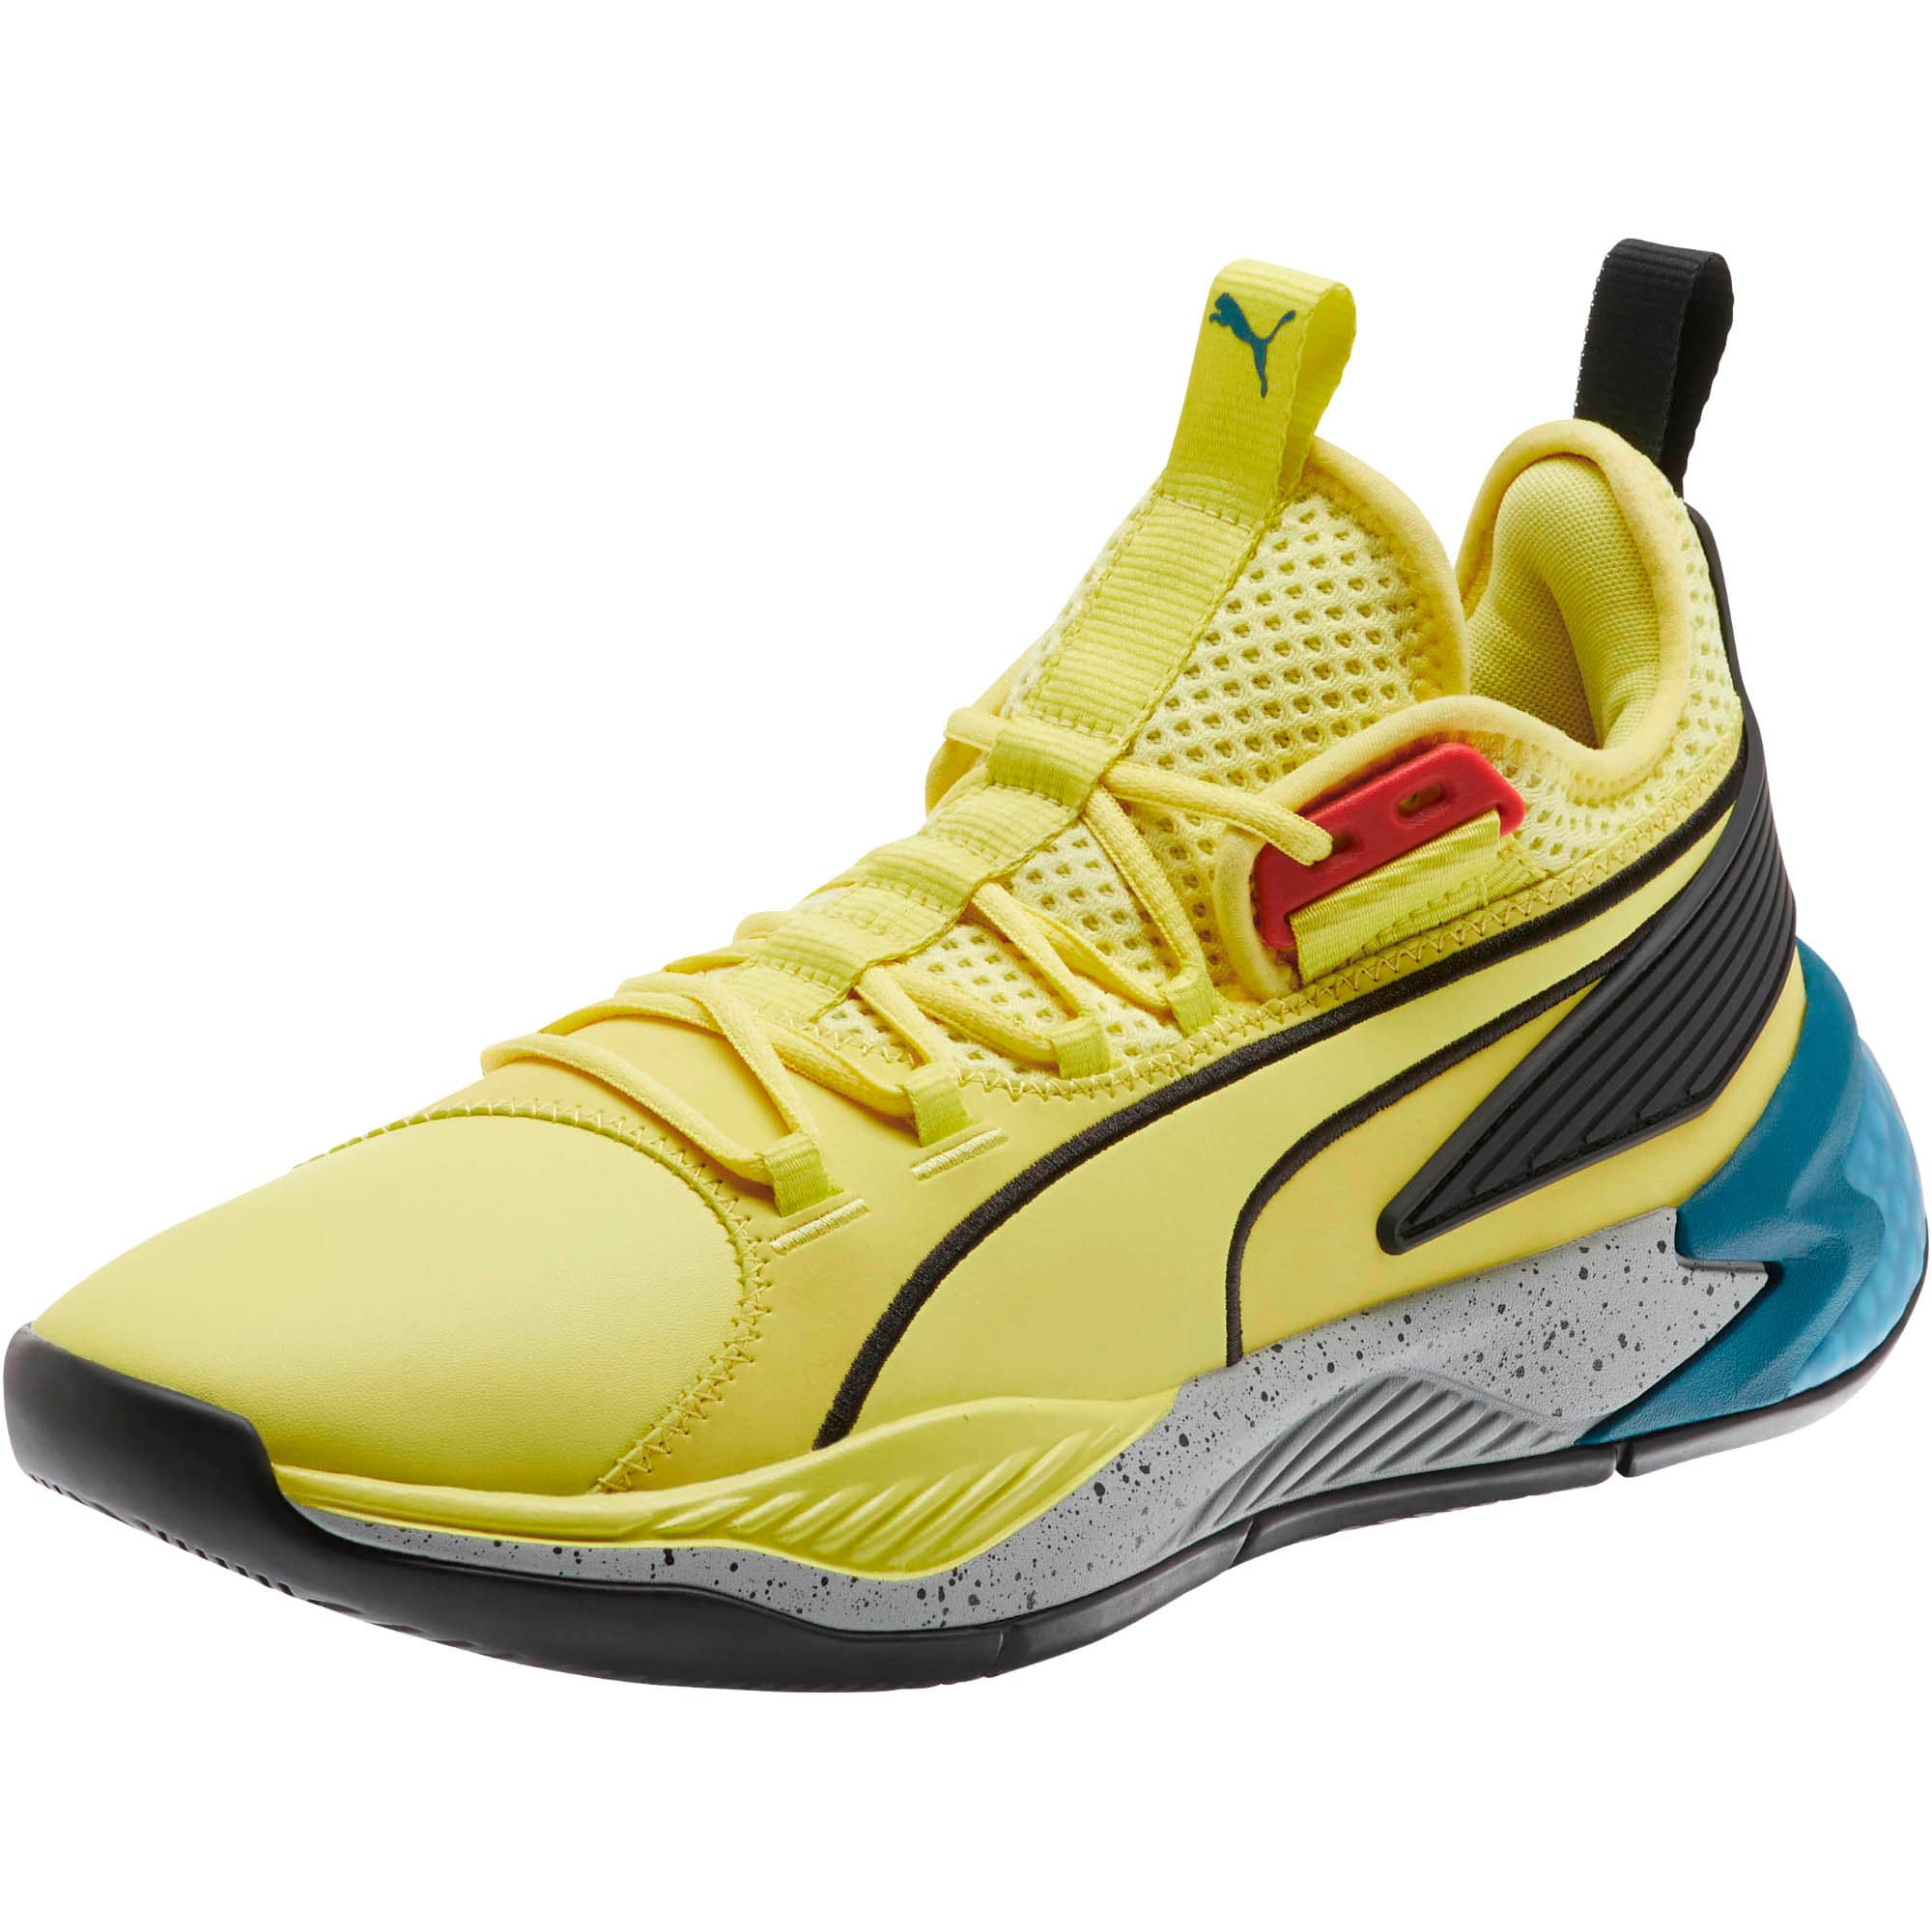 Thumbnail 1 van Uproar Spectra basketbalschoenen, Limelight-zwart-wit, medium